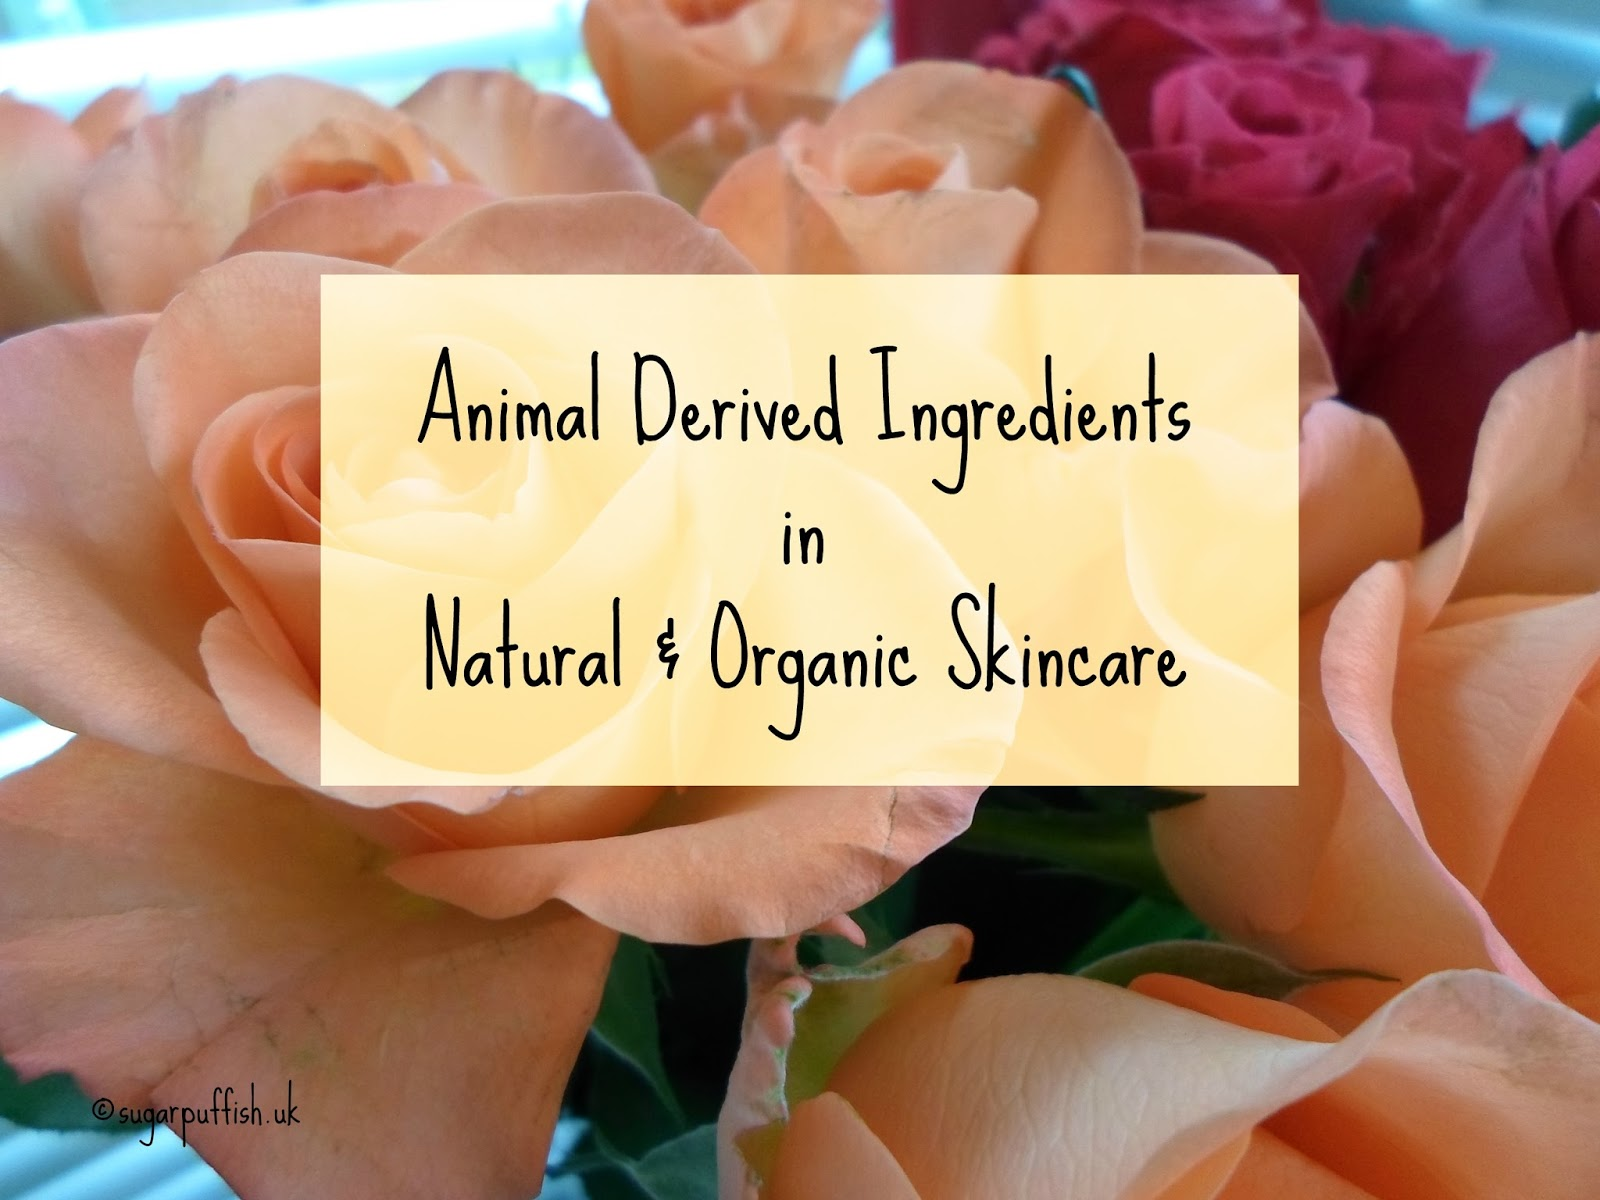 Animal Derived Ingredients in Natural & Organic Skincare